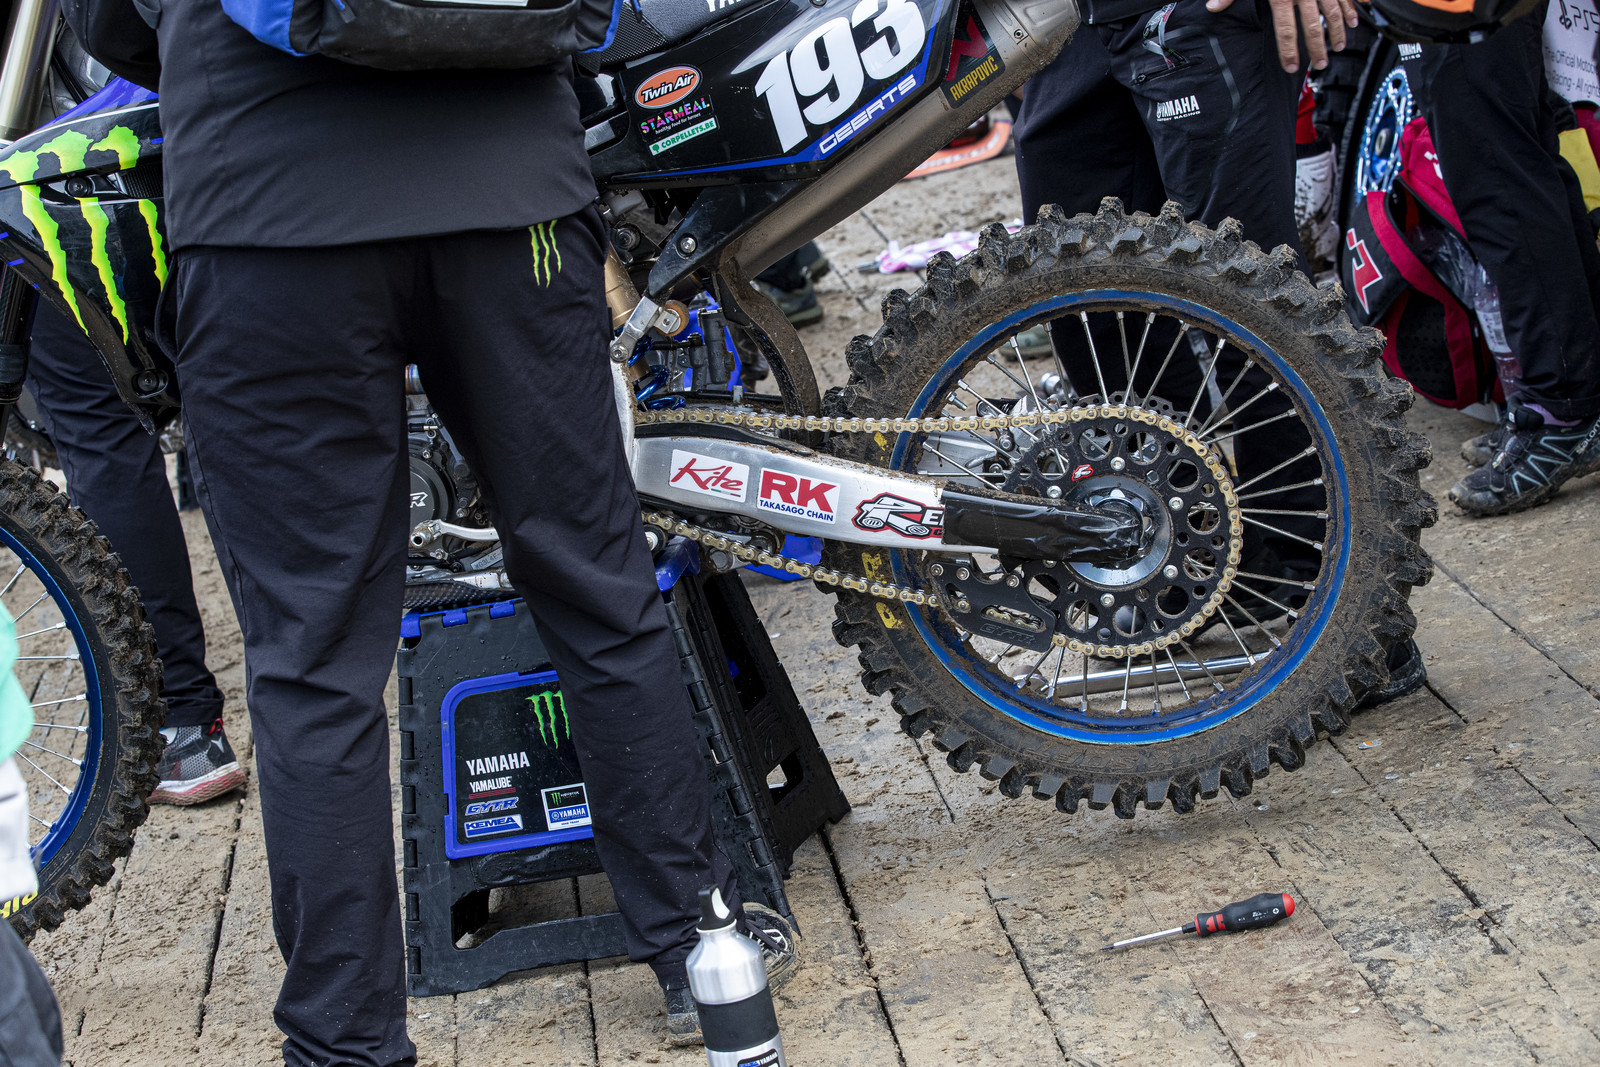 Duct tape on the swingarm? Makes for a cleaner wheel change after the sight lap. See photos below.